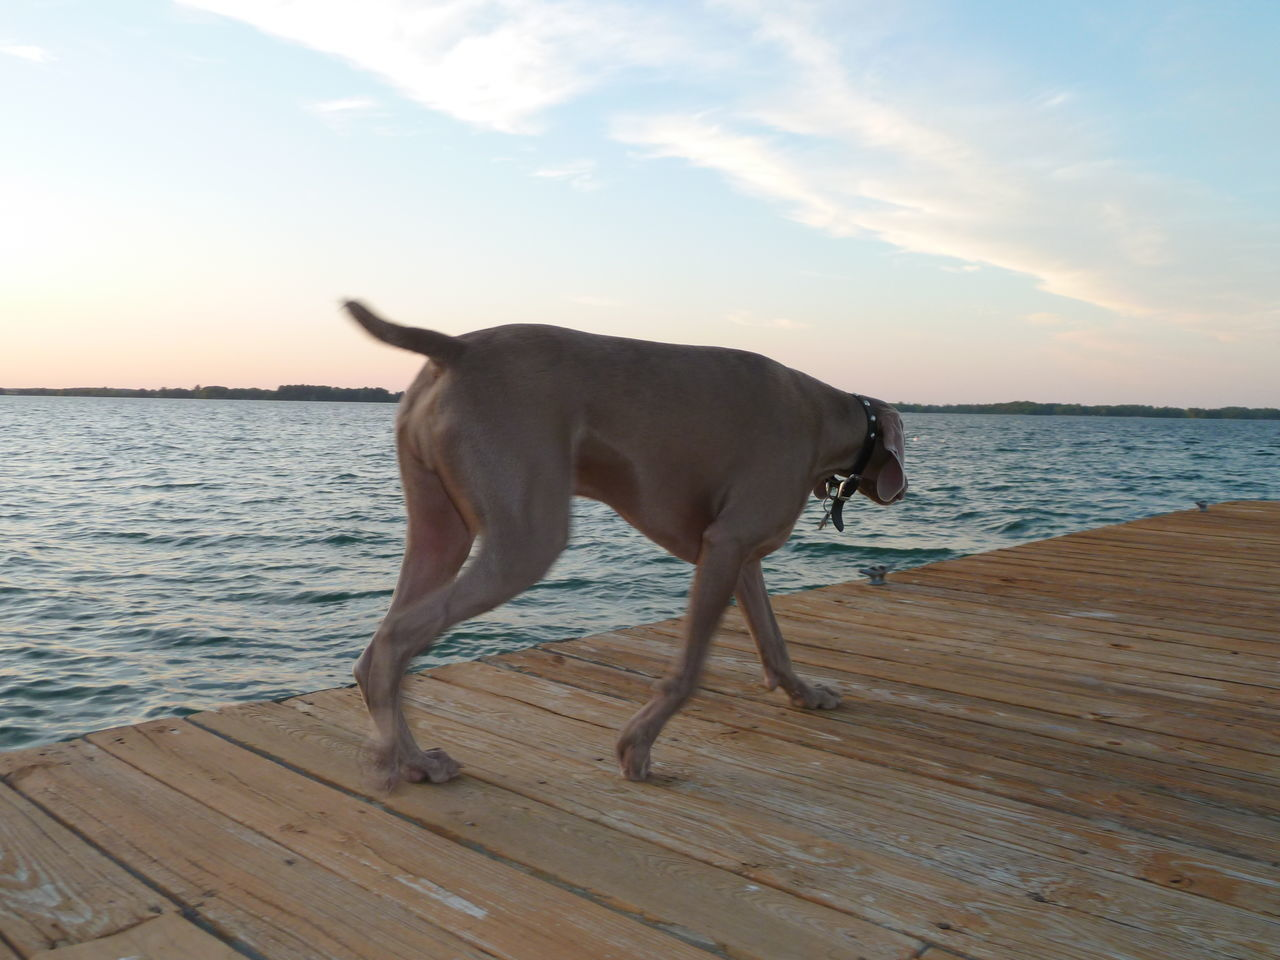 On a mission to the edge. Animal Themes Beach Beauty In Nature Dog Domestic Animals Eyemdog Horizon Over Water Lake Nature One Animal Onthedock Pets River Sea Side View Standing Tranquil Scene Tranquility Water Weimaraner Weimaranerlove Weimaraners Photography In Motion